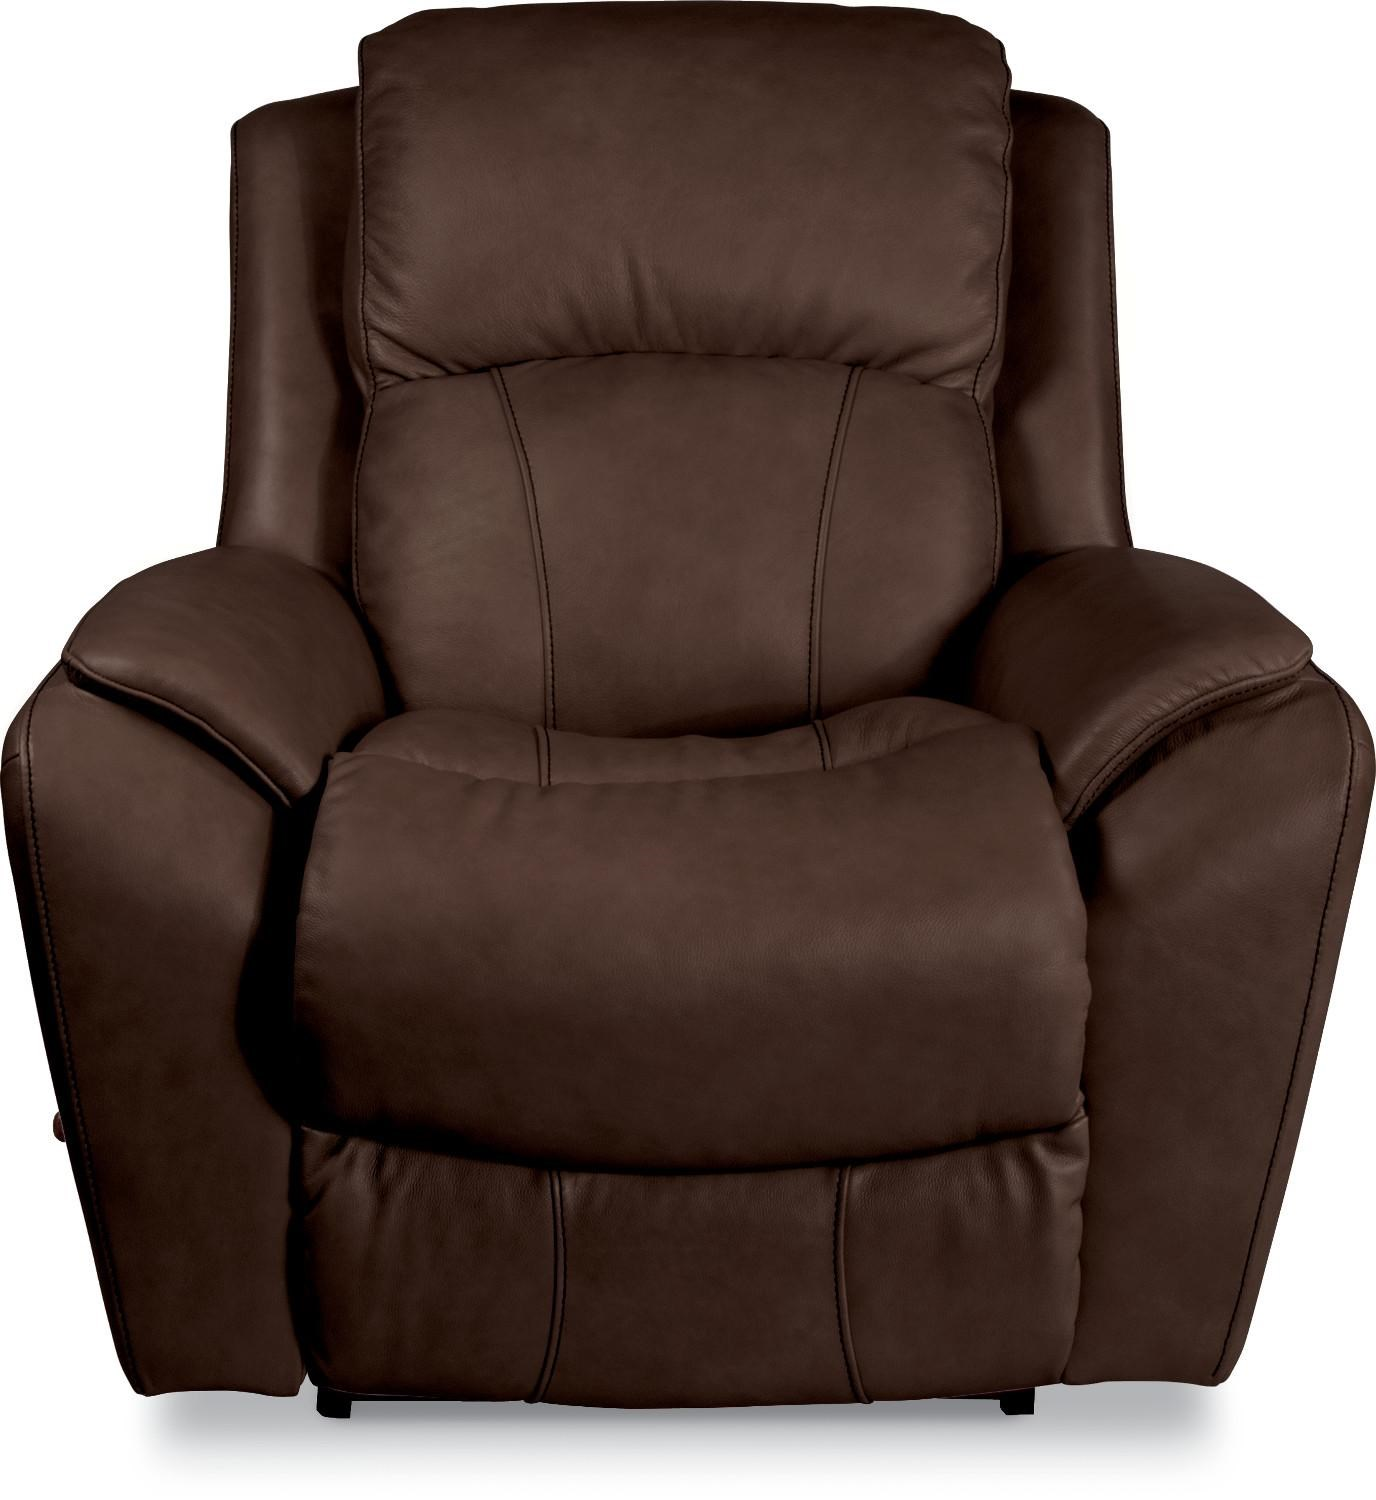 La-Z-Boy BARRETT Casual RECLINA-ROCKER® Recliner with Pillow Arms - Great American Home Store - Three Way Recliners  sc 1 st  Great American Home Store & La-Z-Boy BARRETT Casual RECLINA-ROCKER® Recliner with Pillow Arms ... islam-shia.org